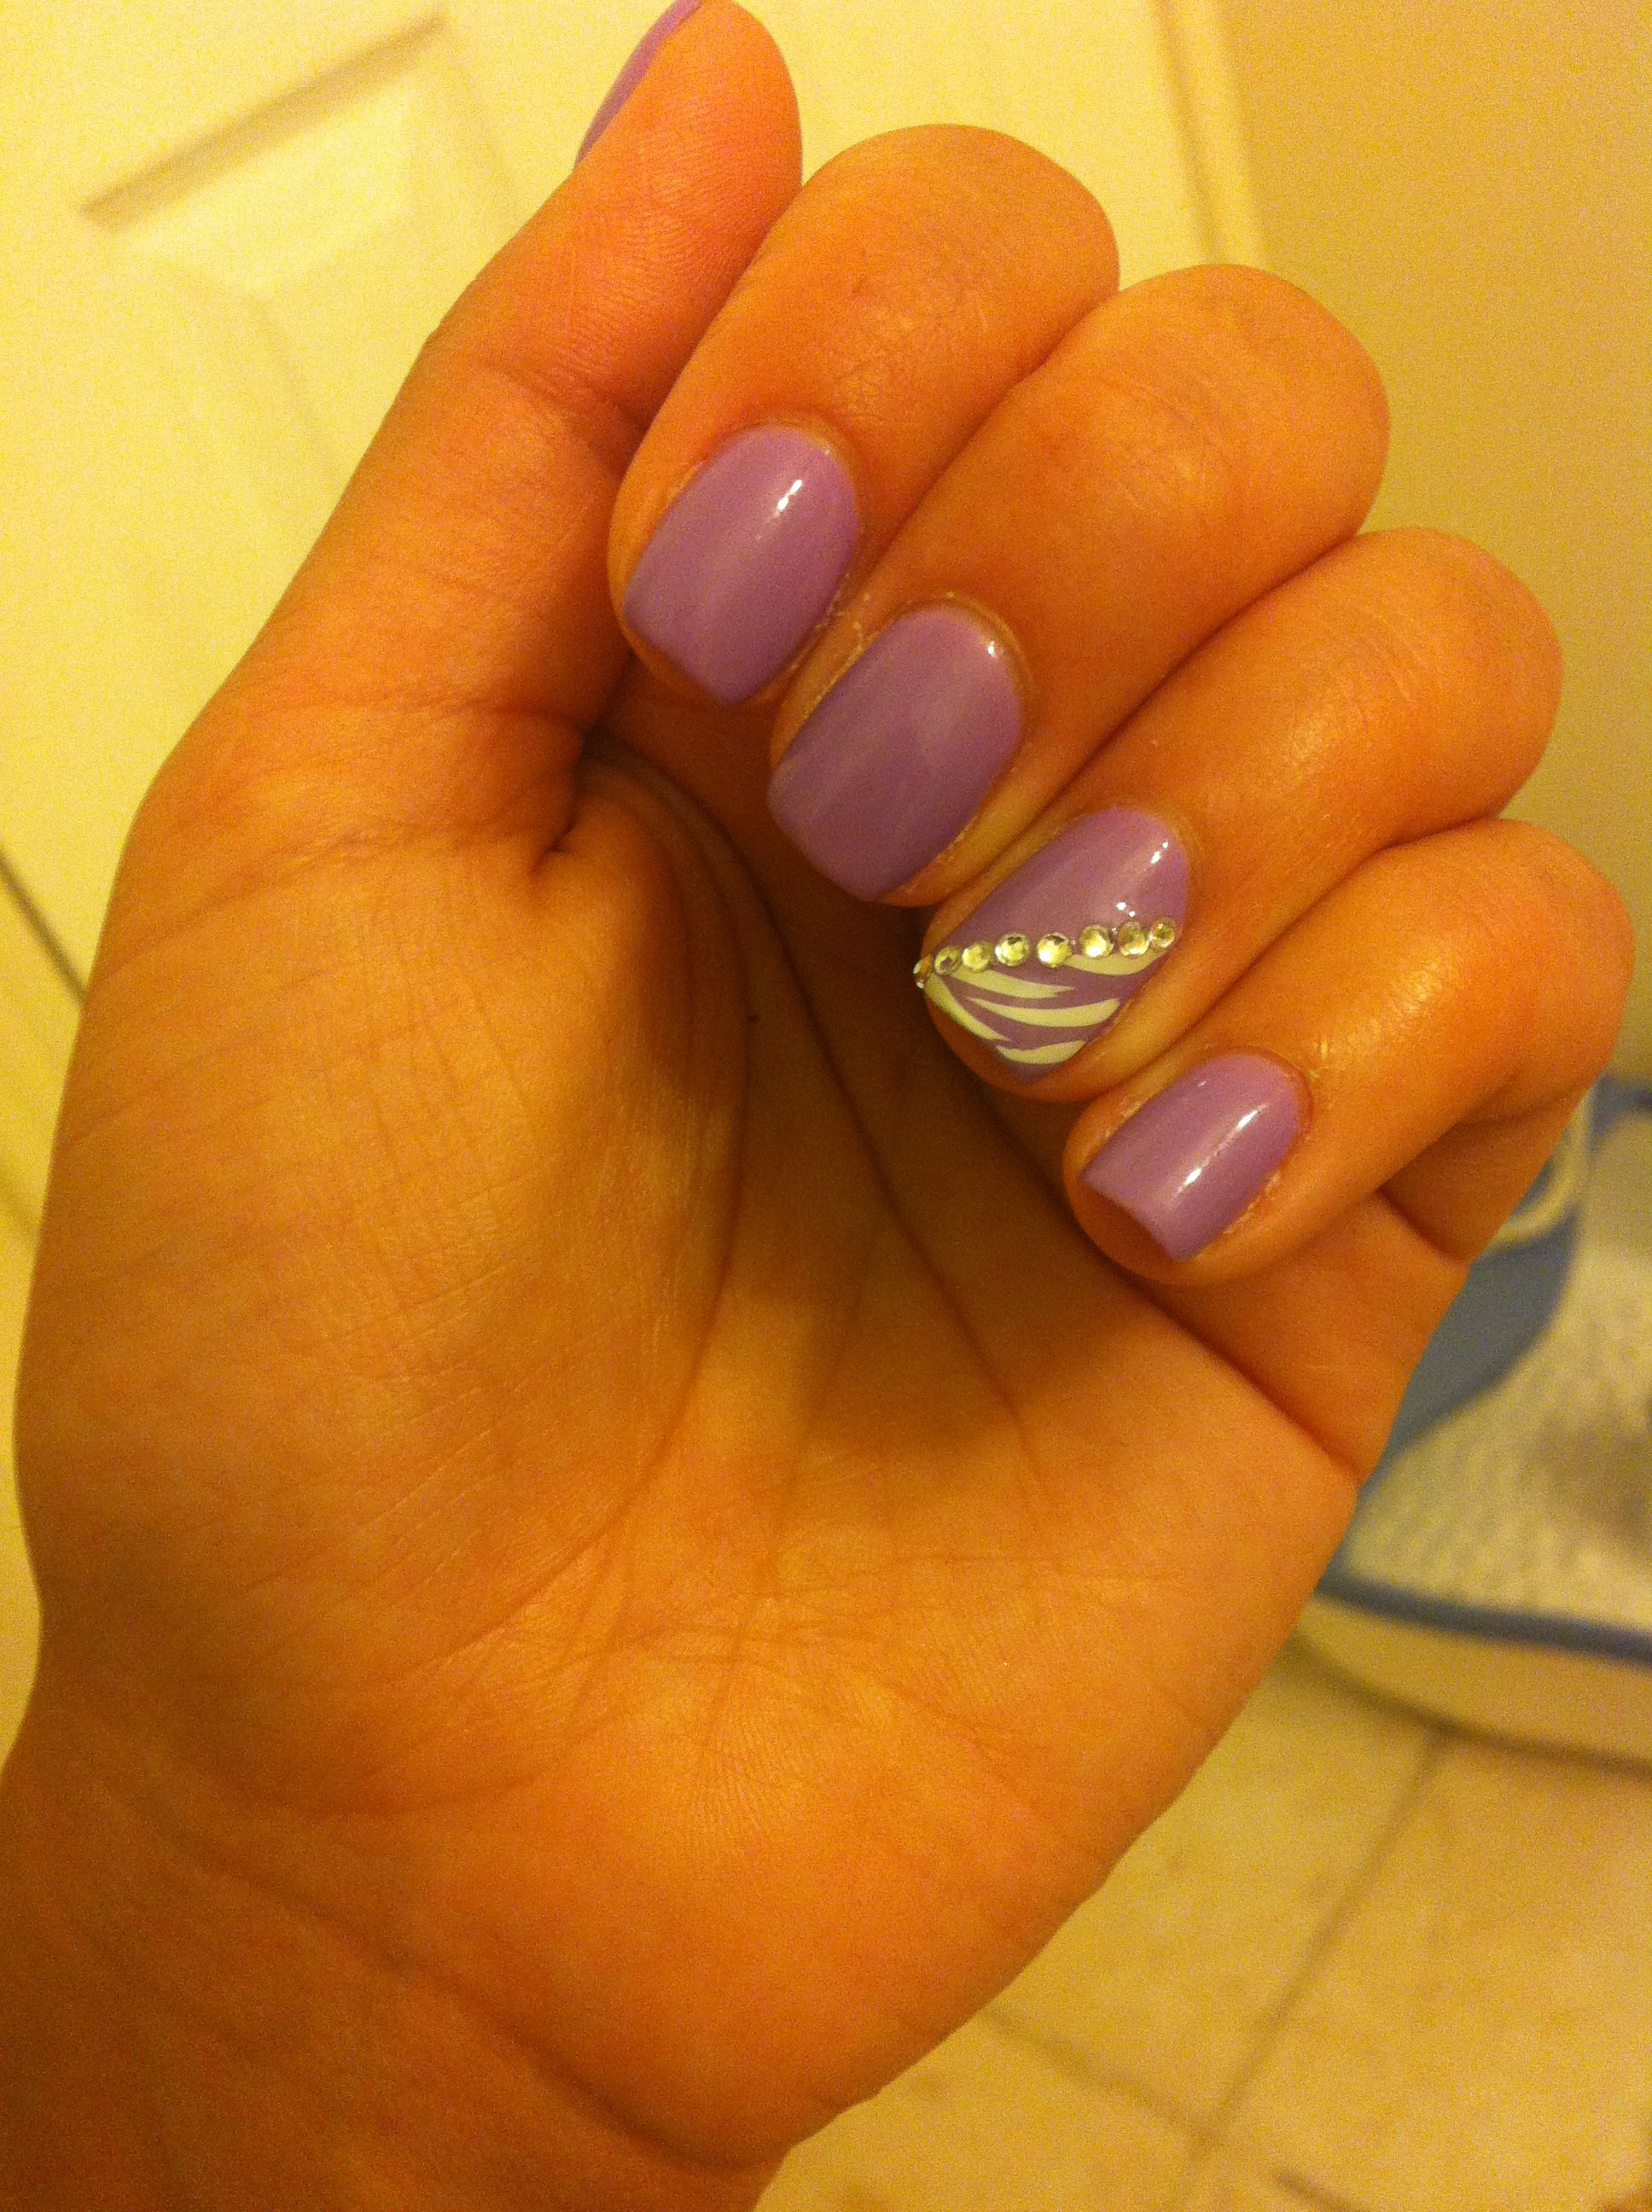 New gel nail design ;) | Beauty | Pinterest | Nail nail, Makeup and ...